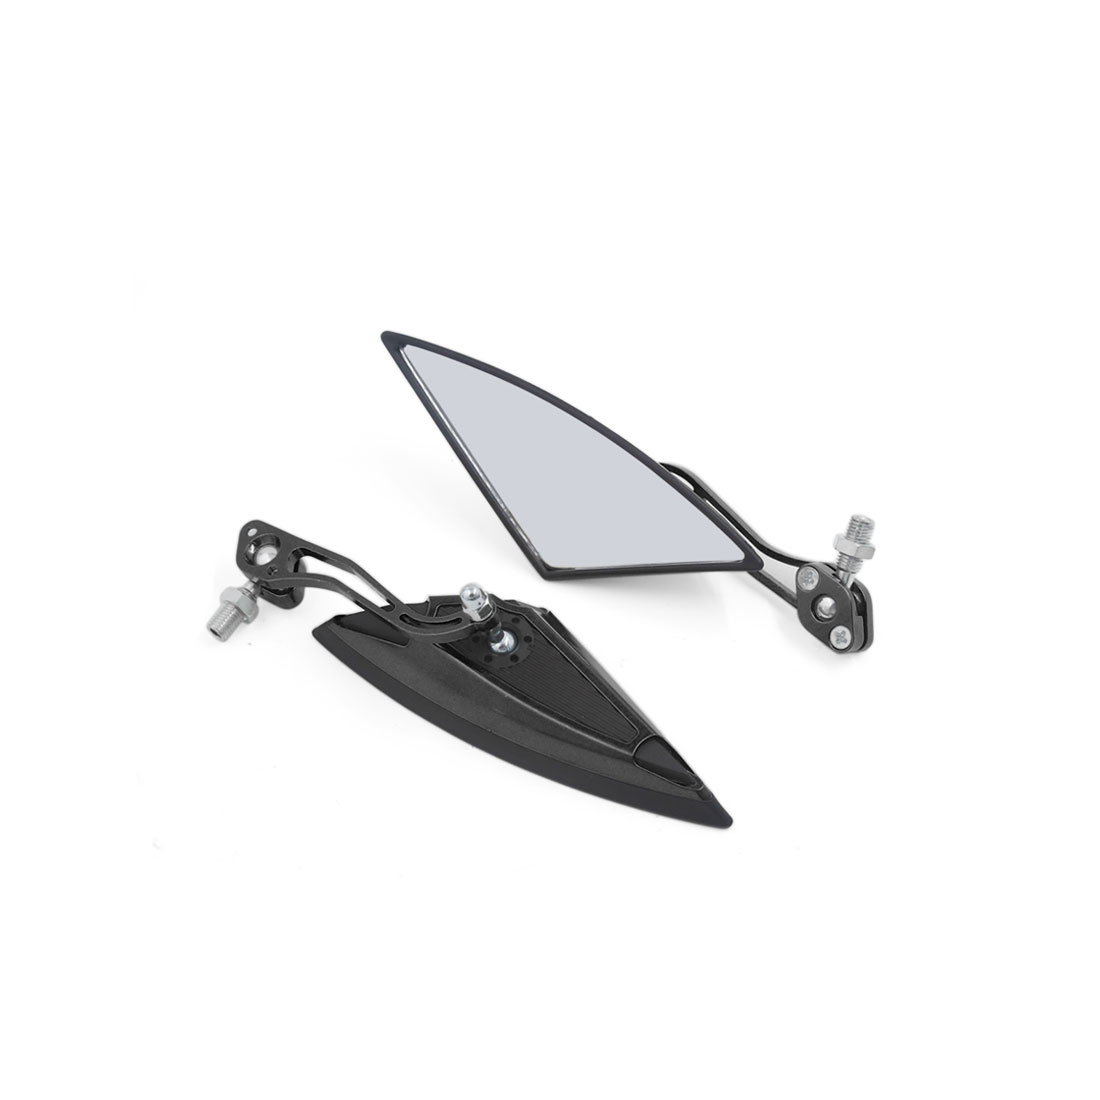 Pair 360 Degree Rotatable Triangle Shape Mirrors Black for Motorcycles Crusiers